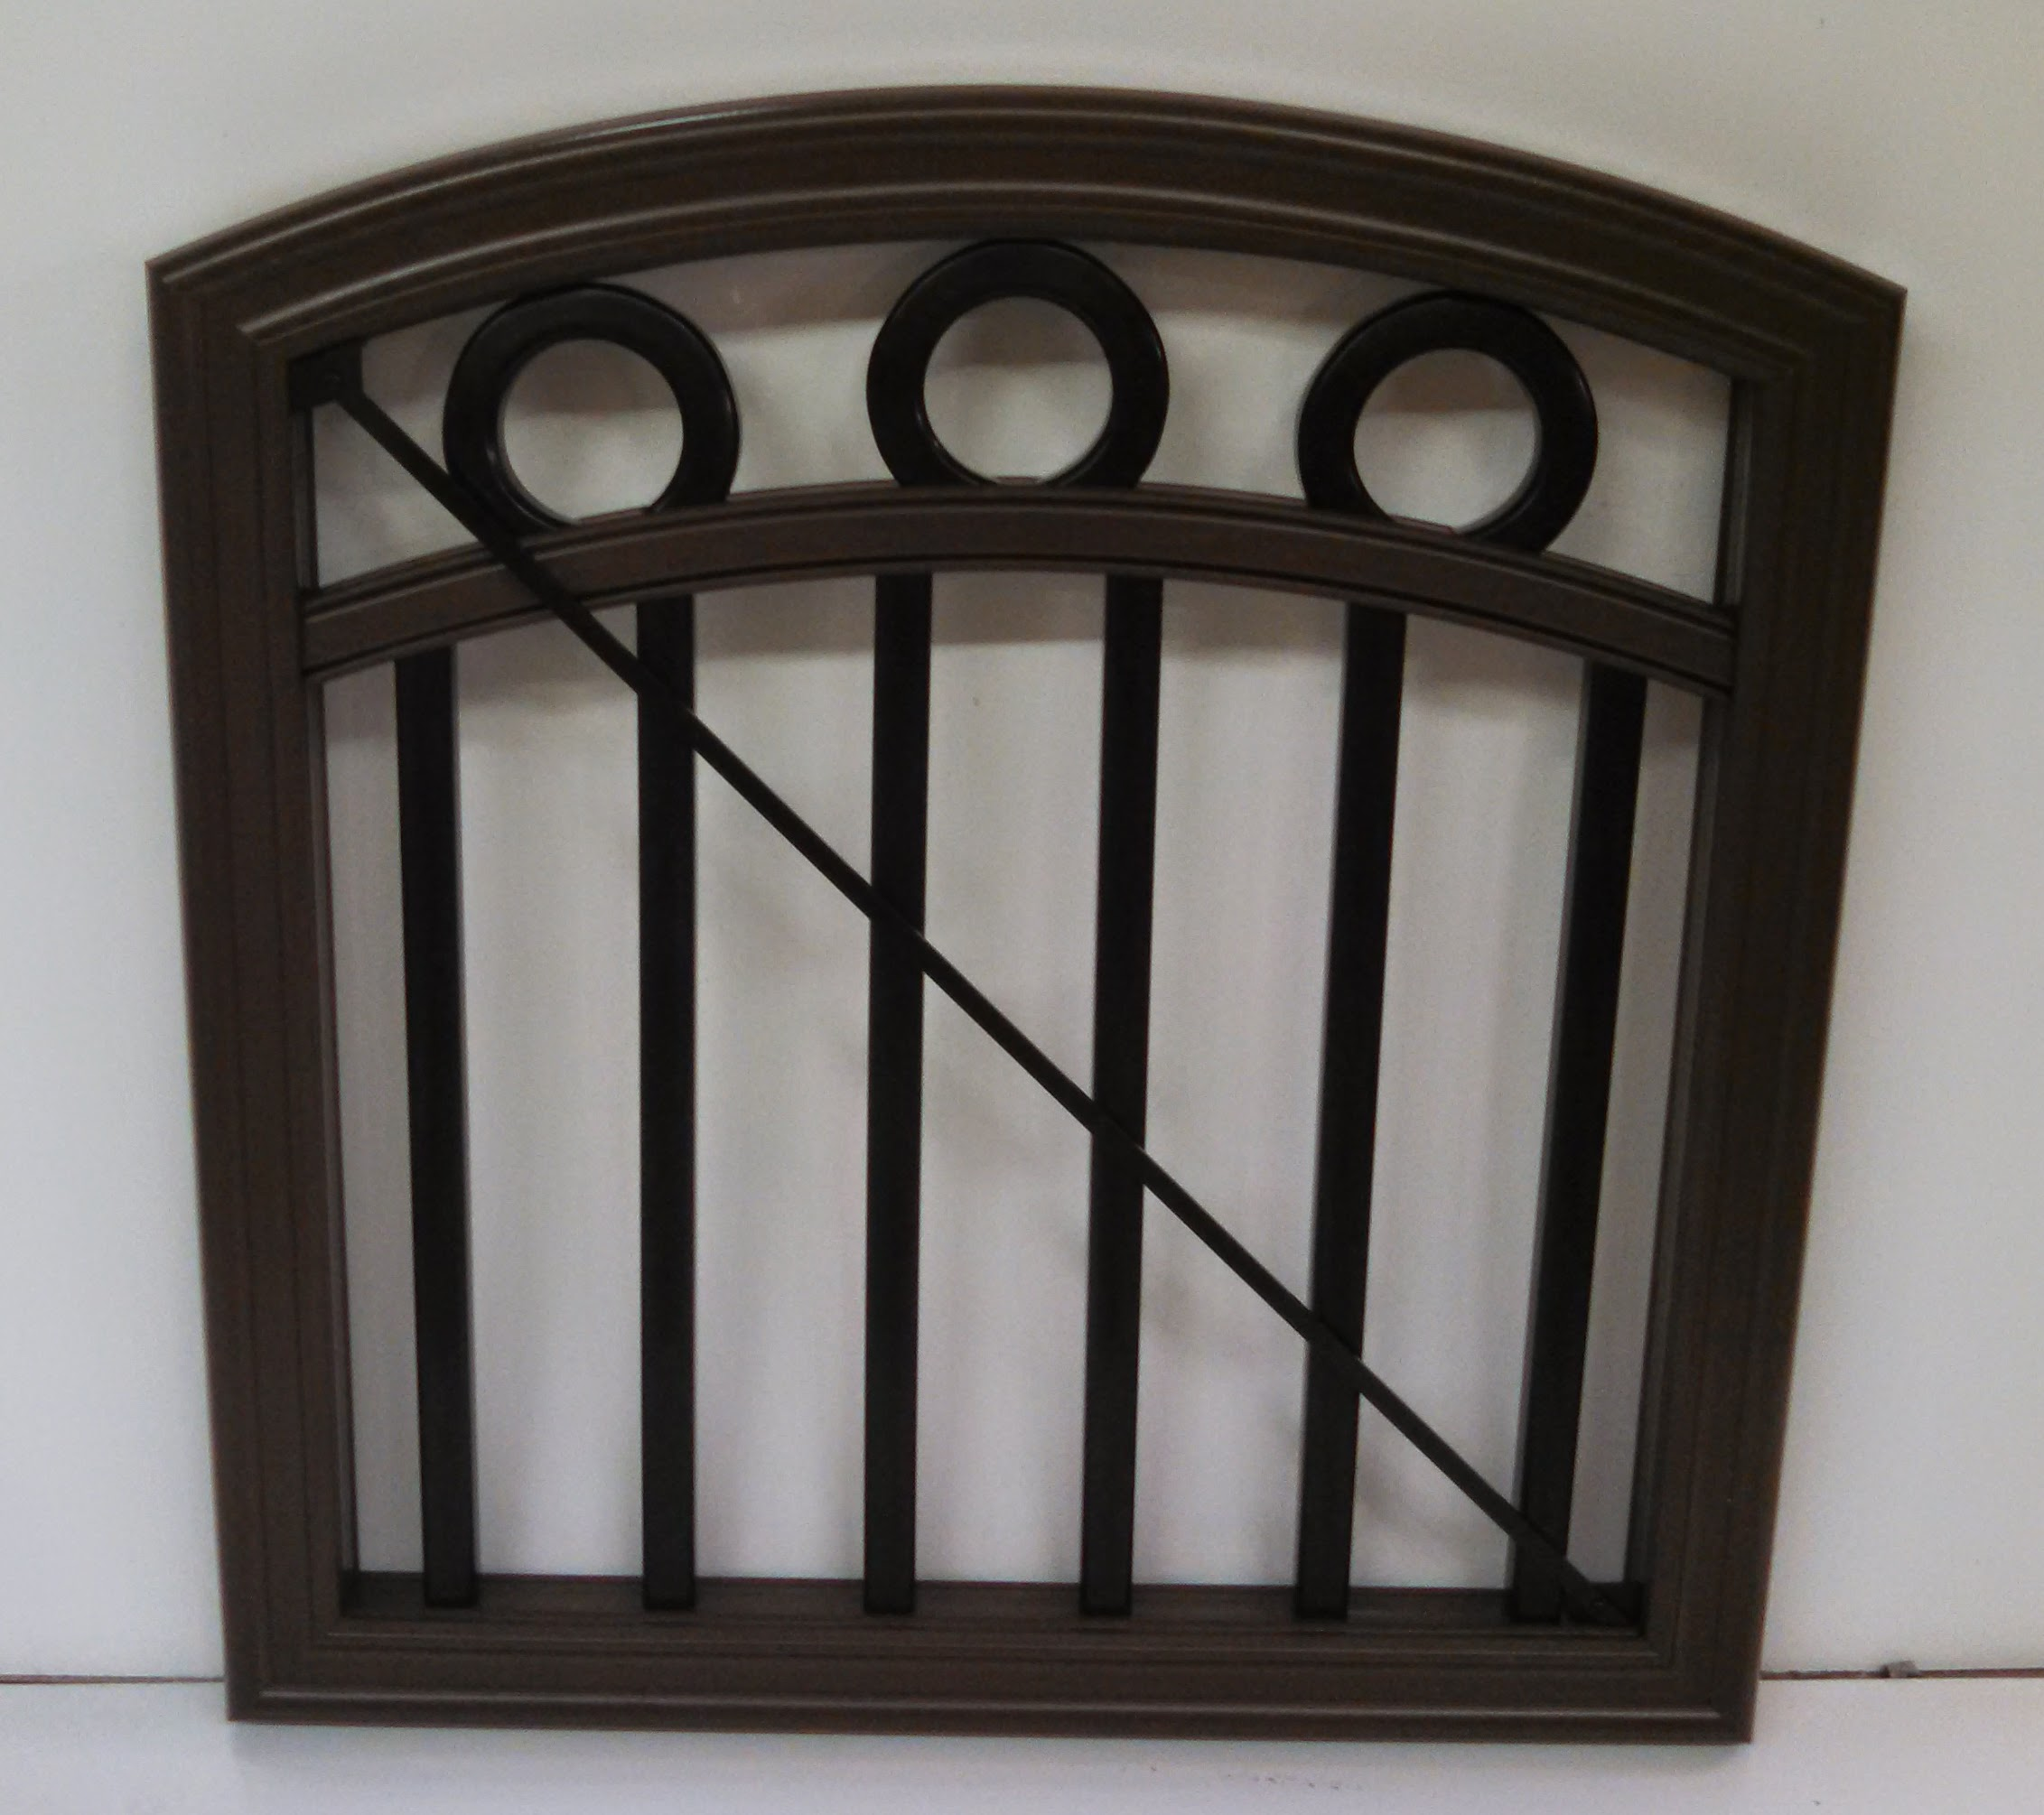 TimbeTech RadianceRail Arch Top Gate with Decorative Circles